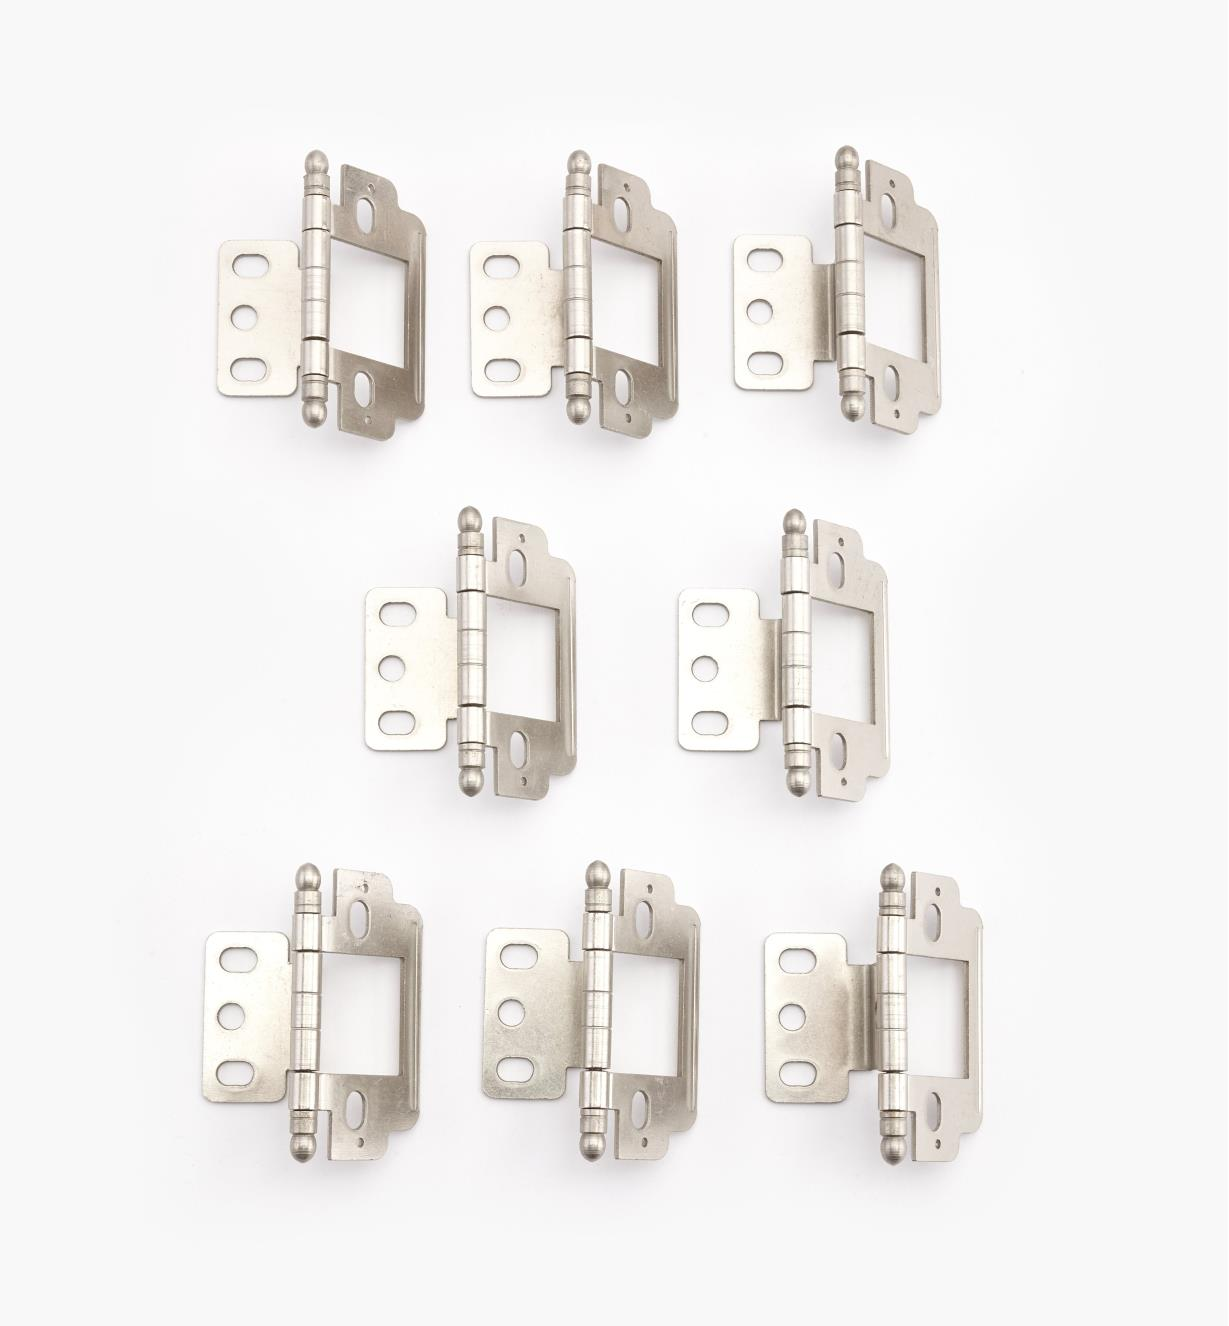 01H3145 - Nickel Plate Ball Partial-Wrap Inset Hinges, pkg. of 8